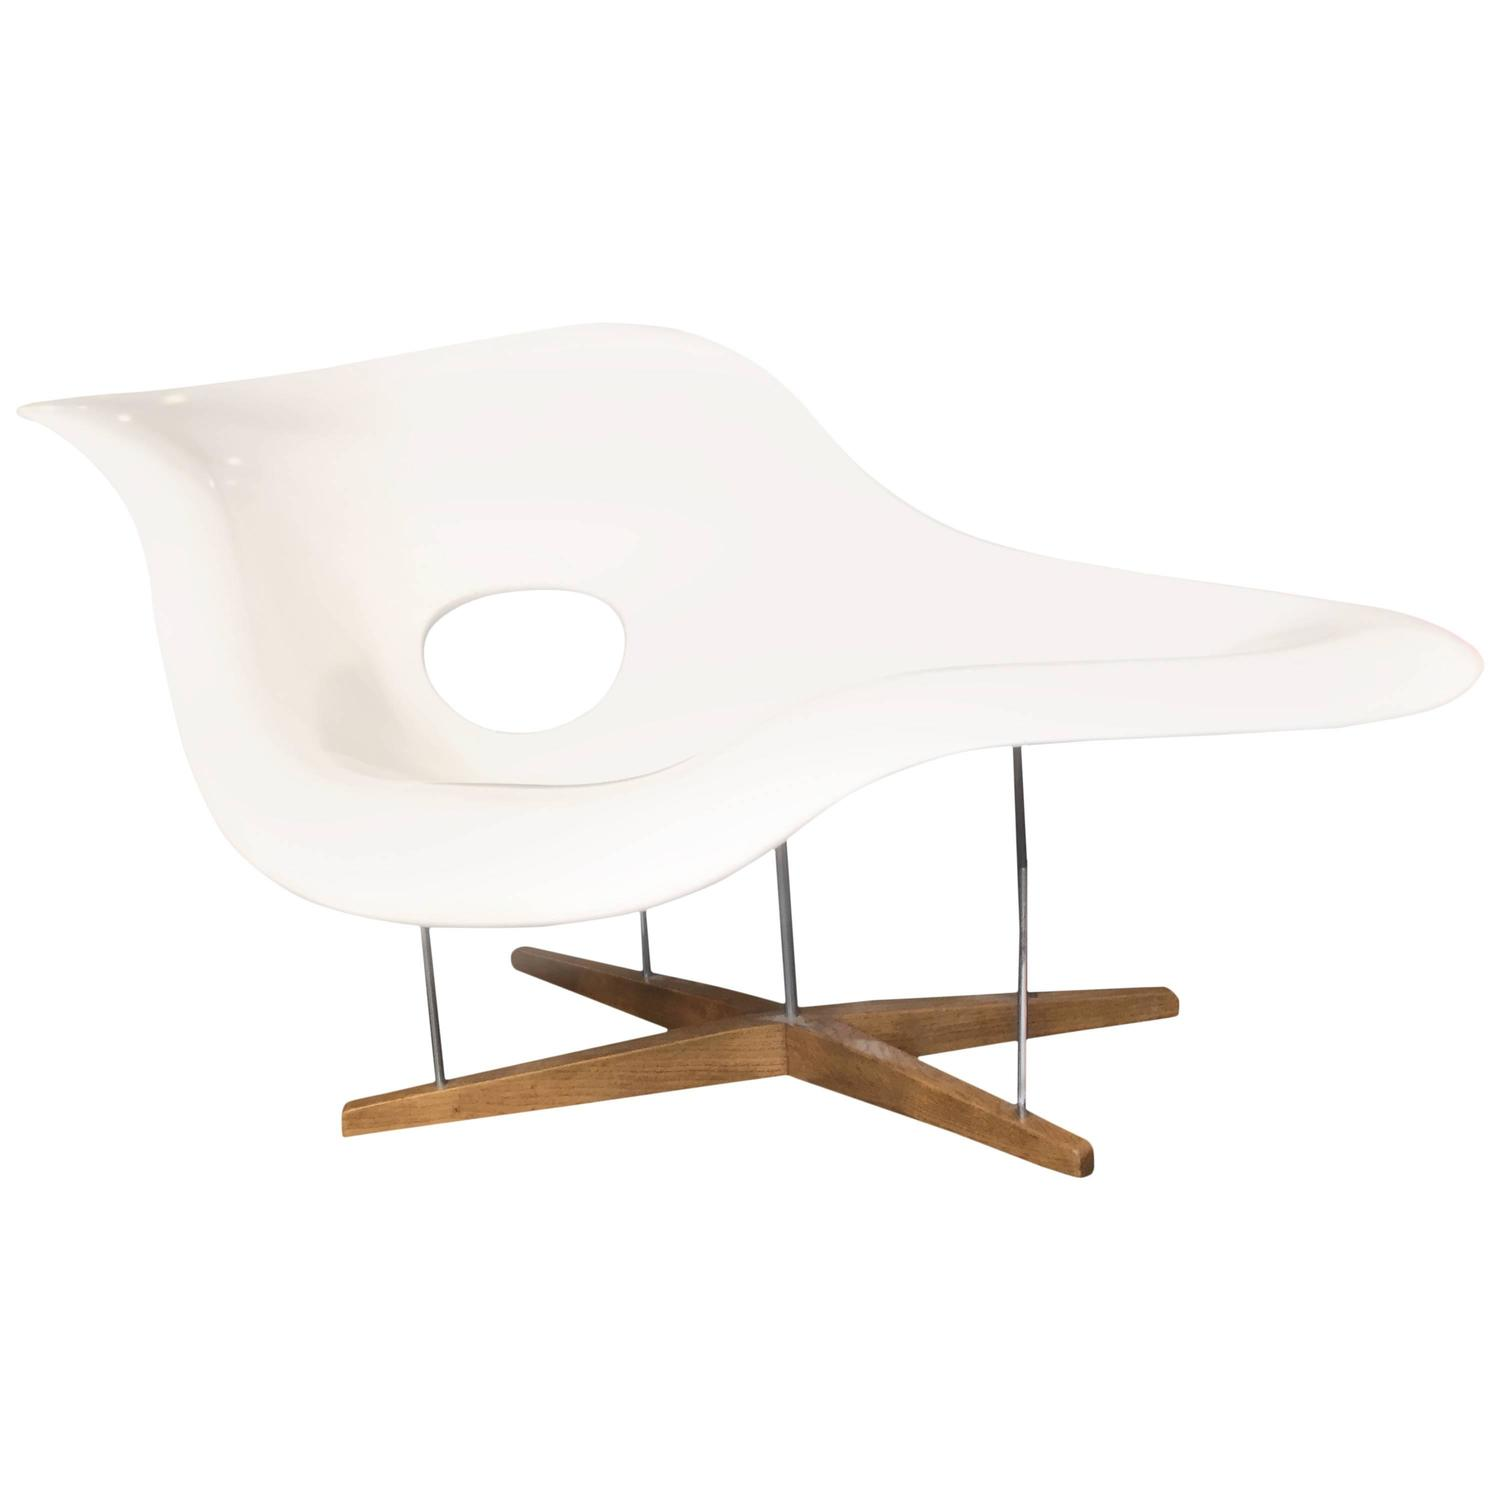 vitra edition la chaise by charles and ray eames at 1stdibs. Black Bedroom Furniture Sets. Home Design Ideas